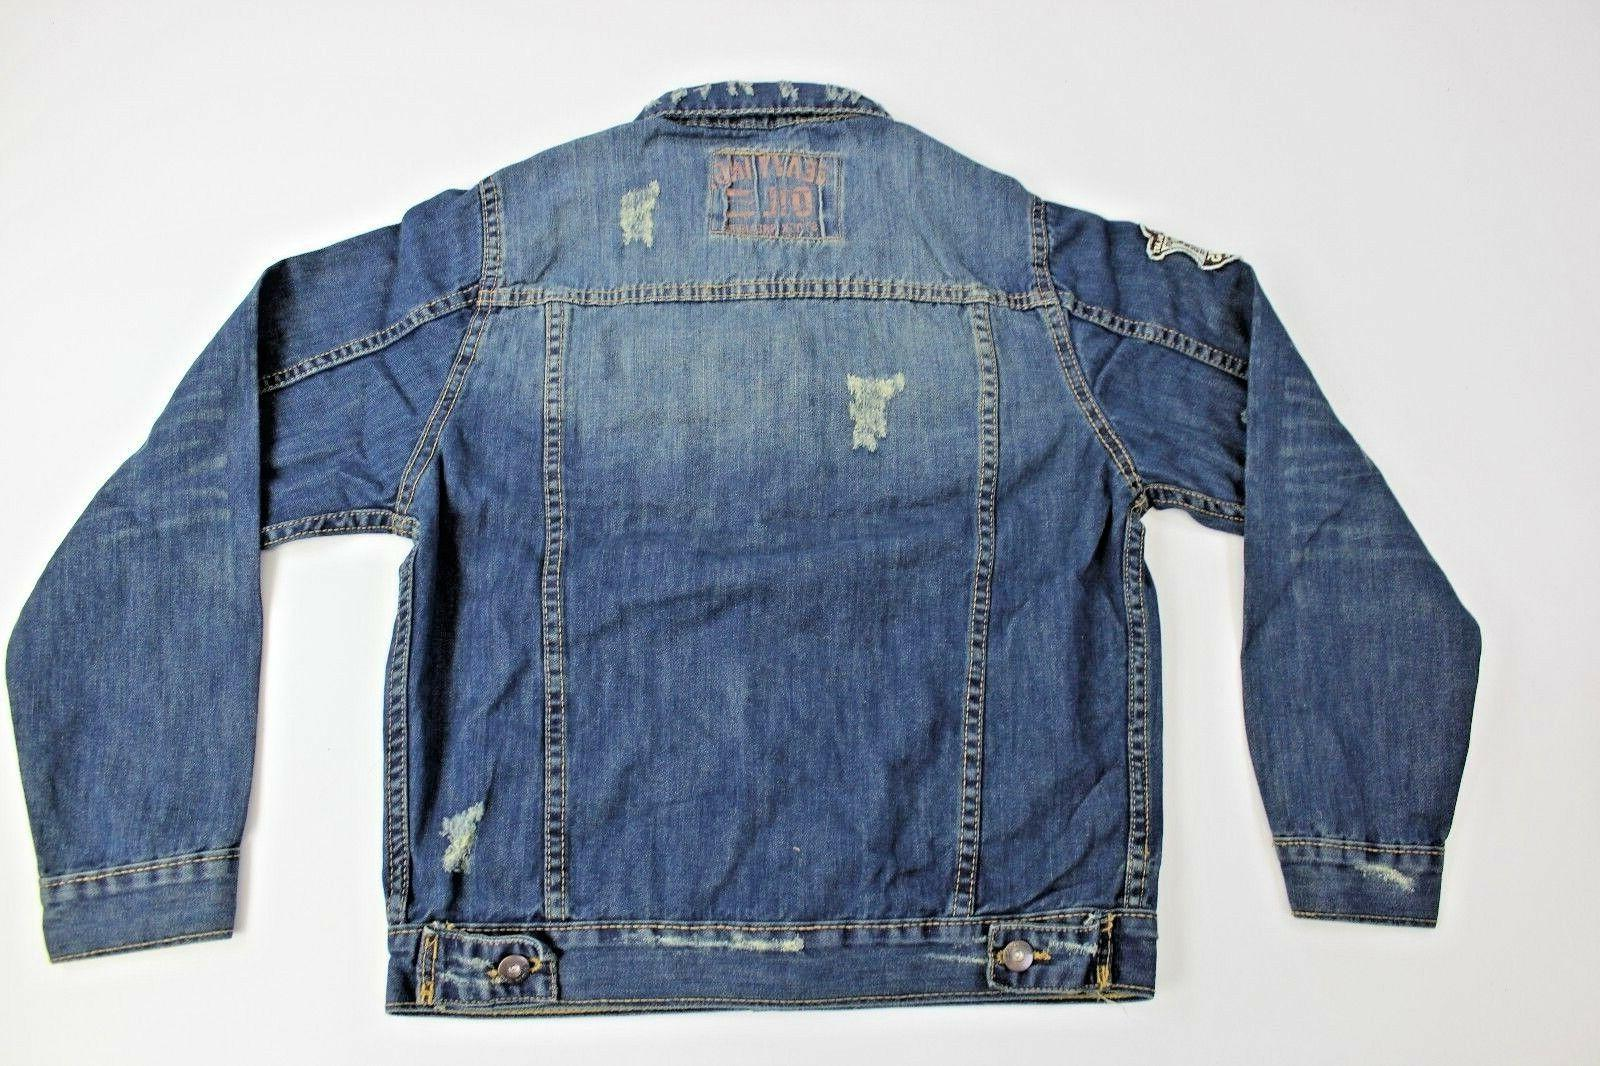 TONY JACKET 6GD11J Petite Size Blue Denim Jacket